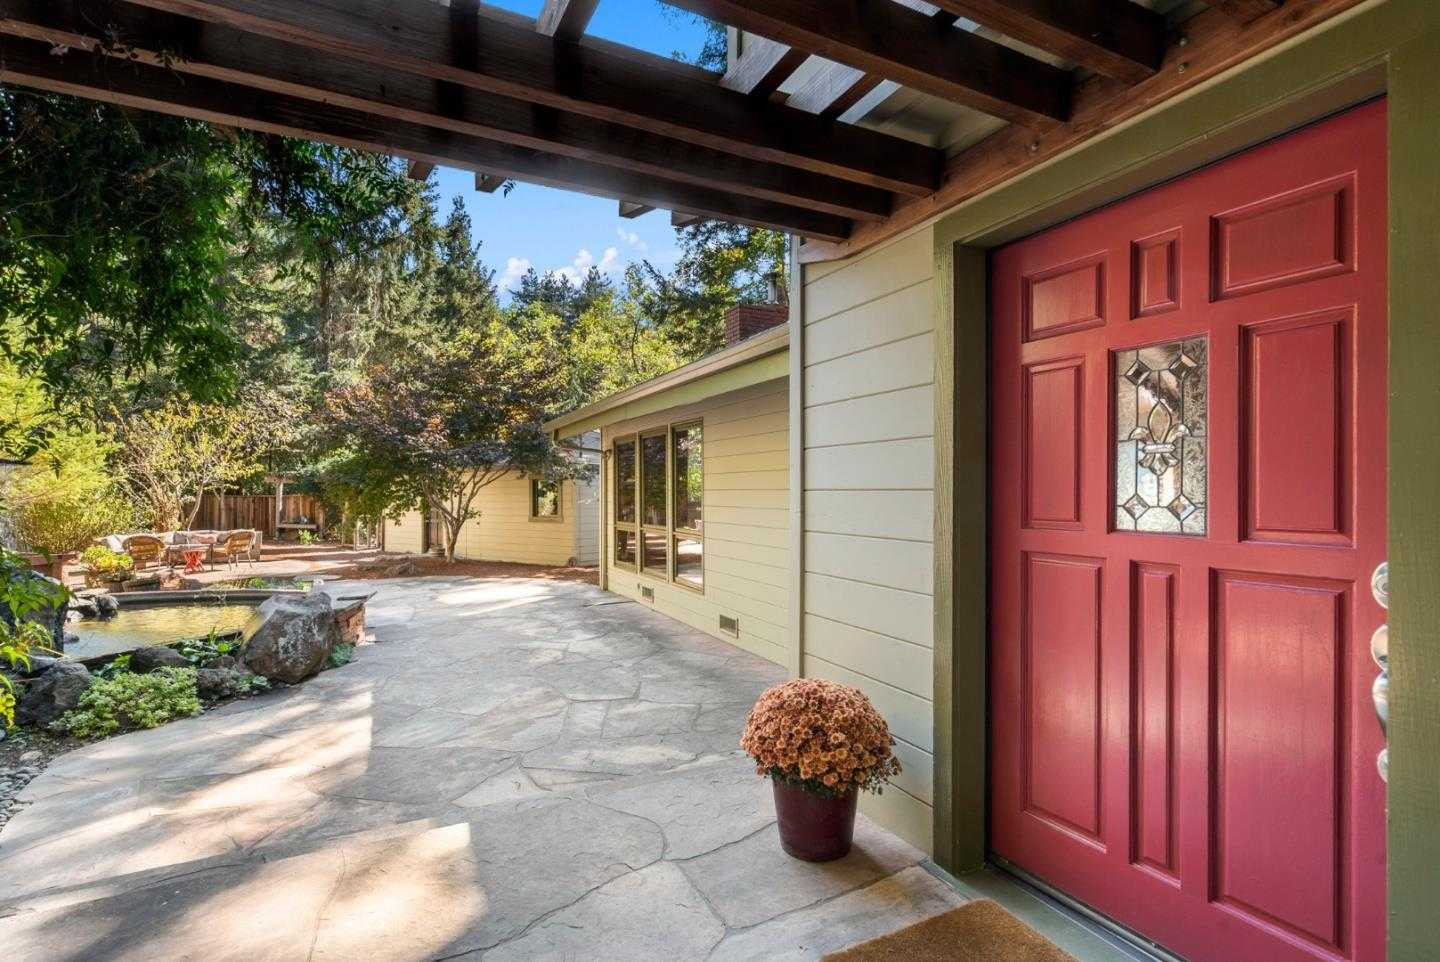 $1,650,000 - 4Br/4Ba -  for Sale in Santa Cruz